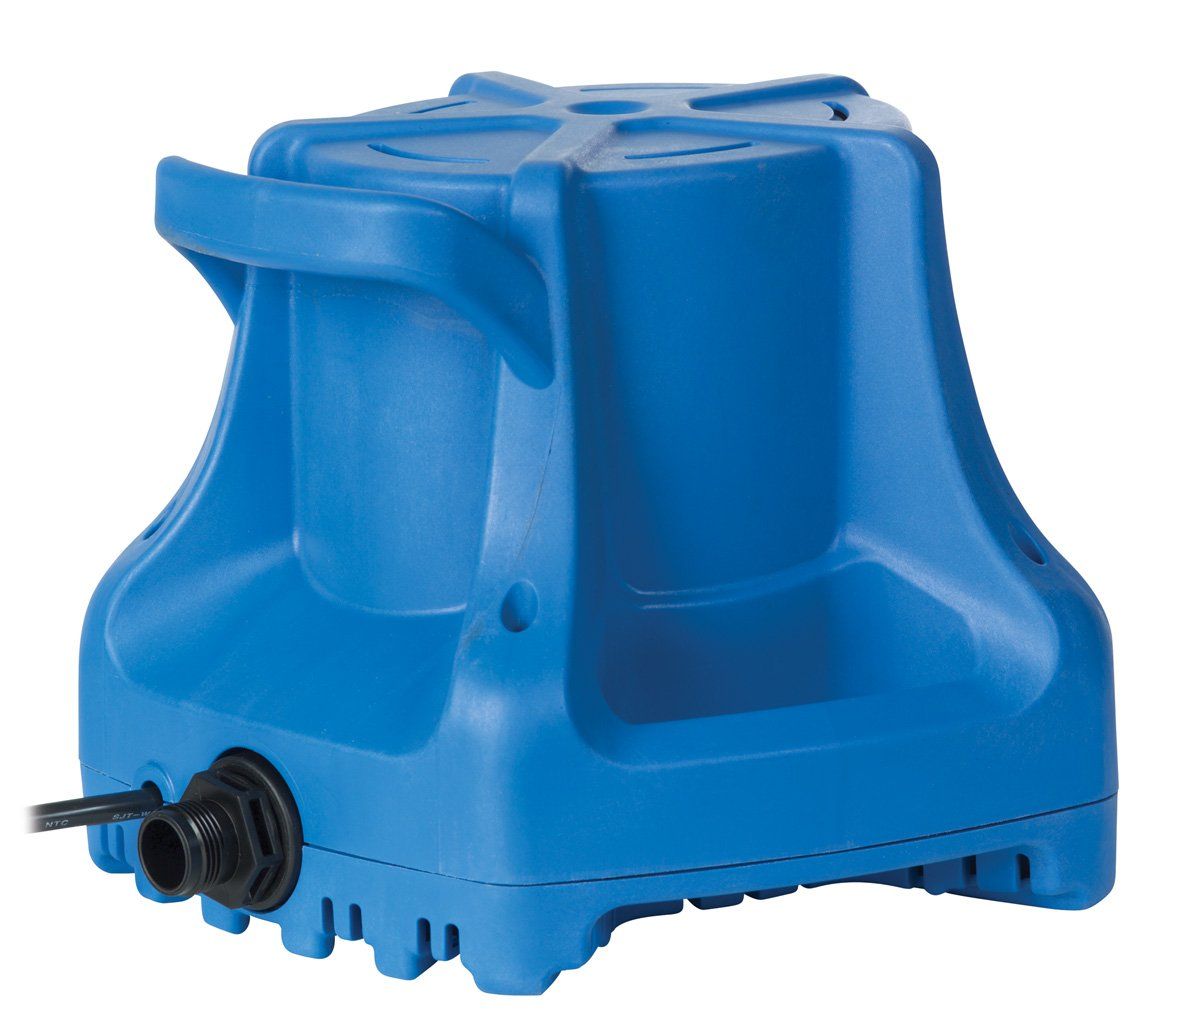 Little Giant APCP-1700 1/3-HP Automatic Pool Cover Submersible Pump by Little Giant